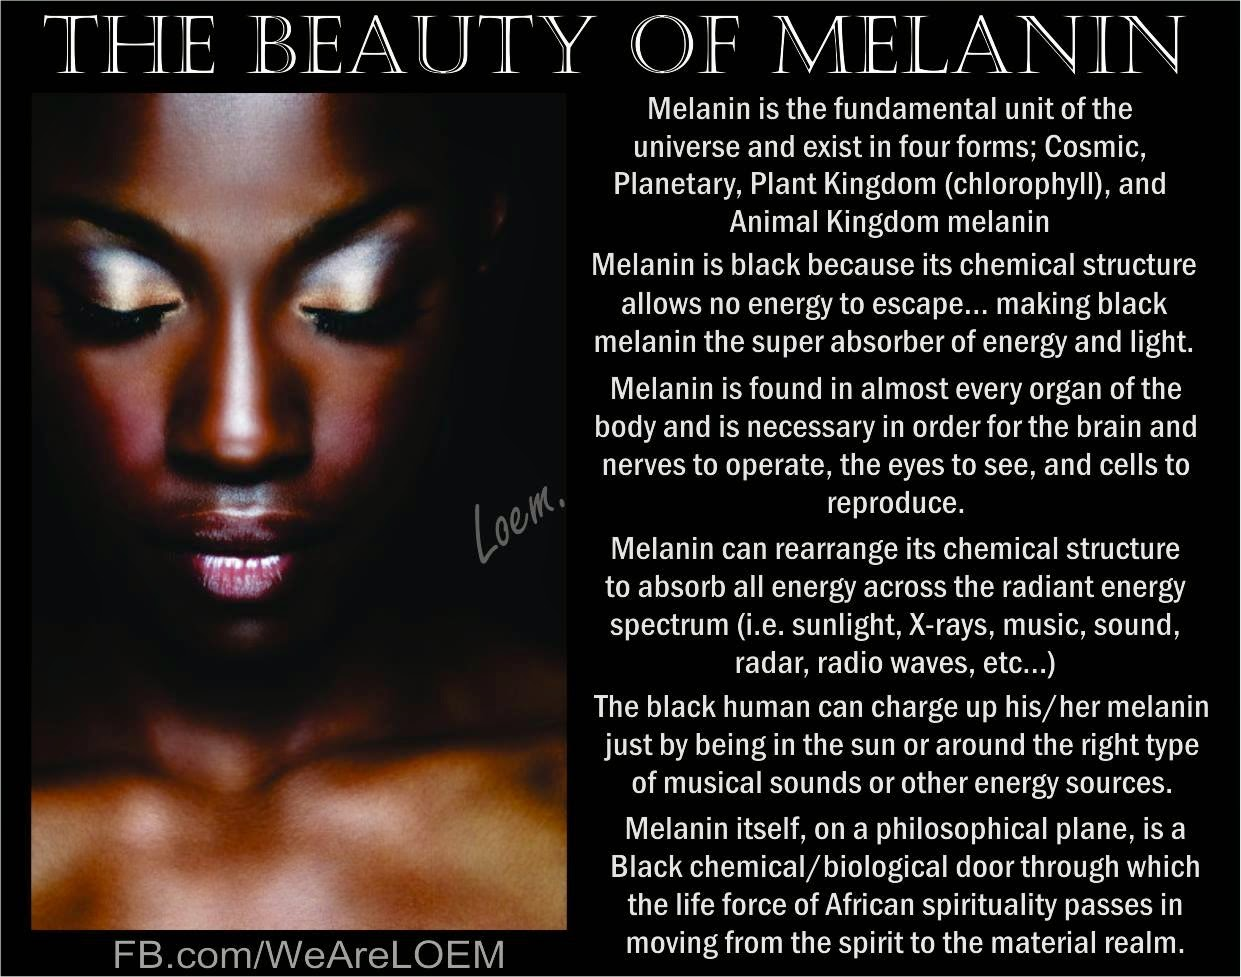 Melanin, Fluoride And The Pineal Gland